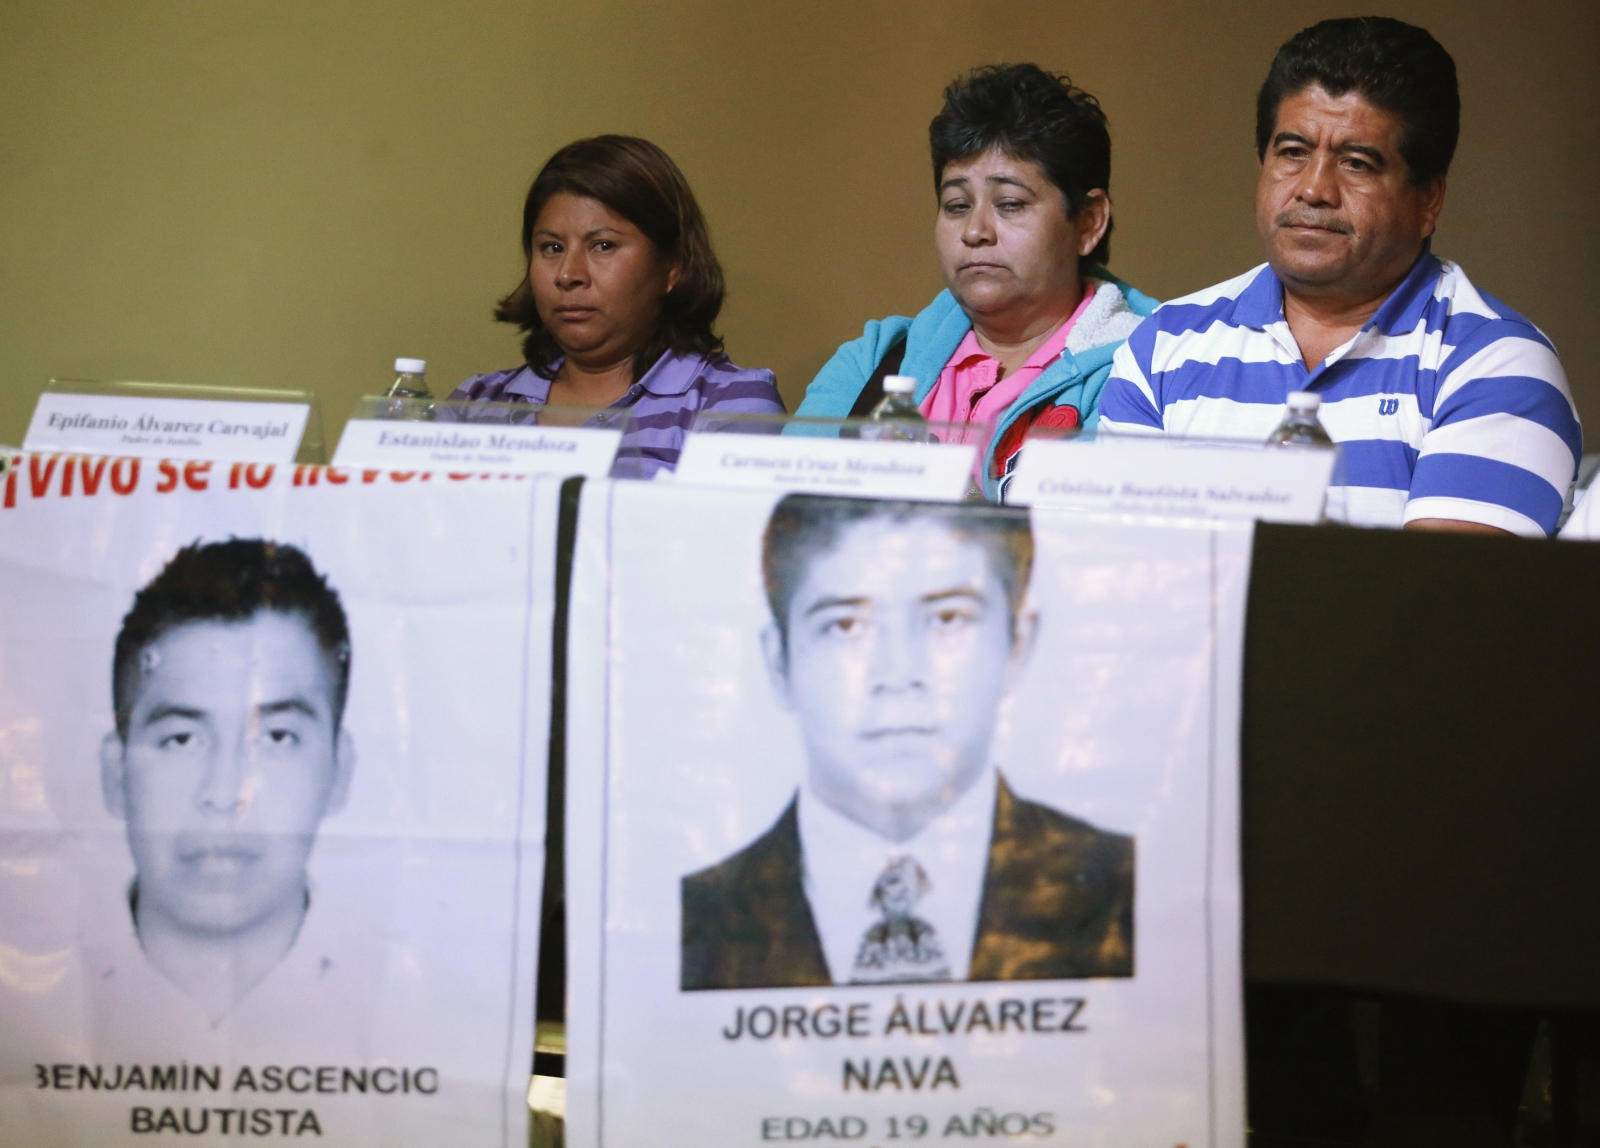 Mexico confirms missing 43 students slaughtered and incinerated